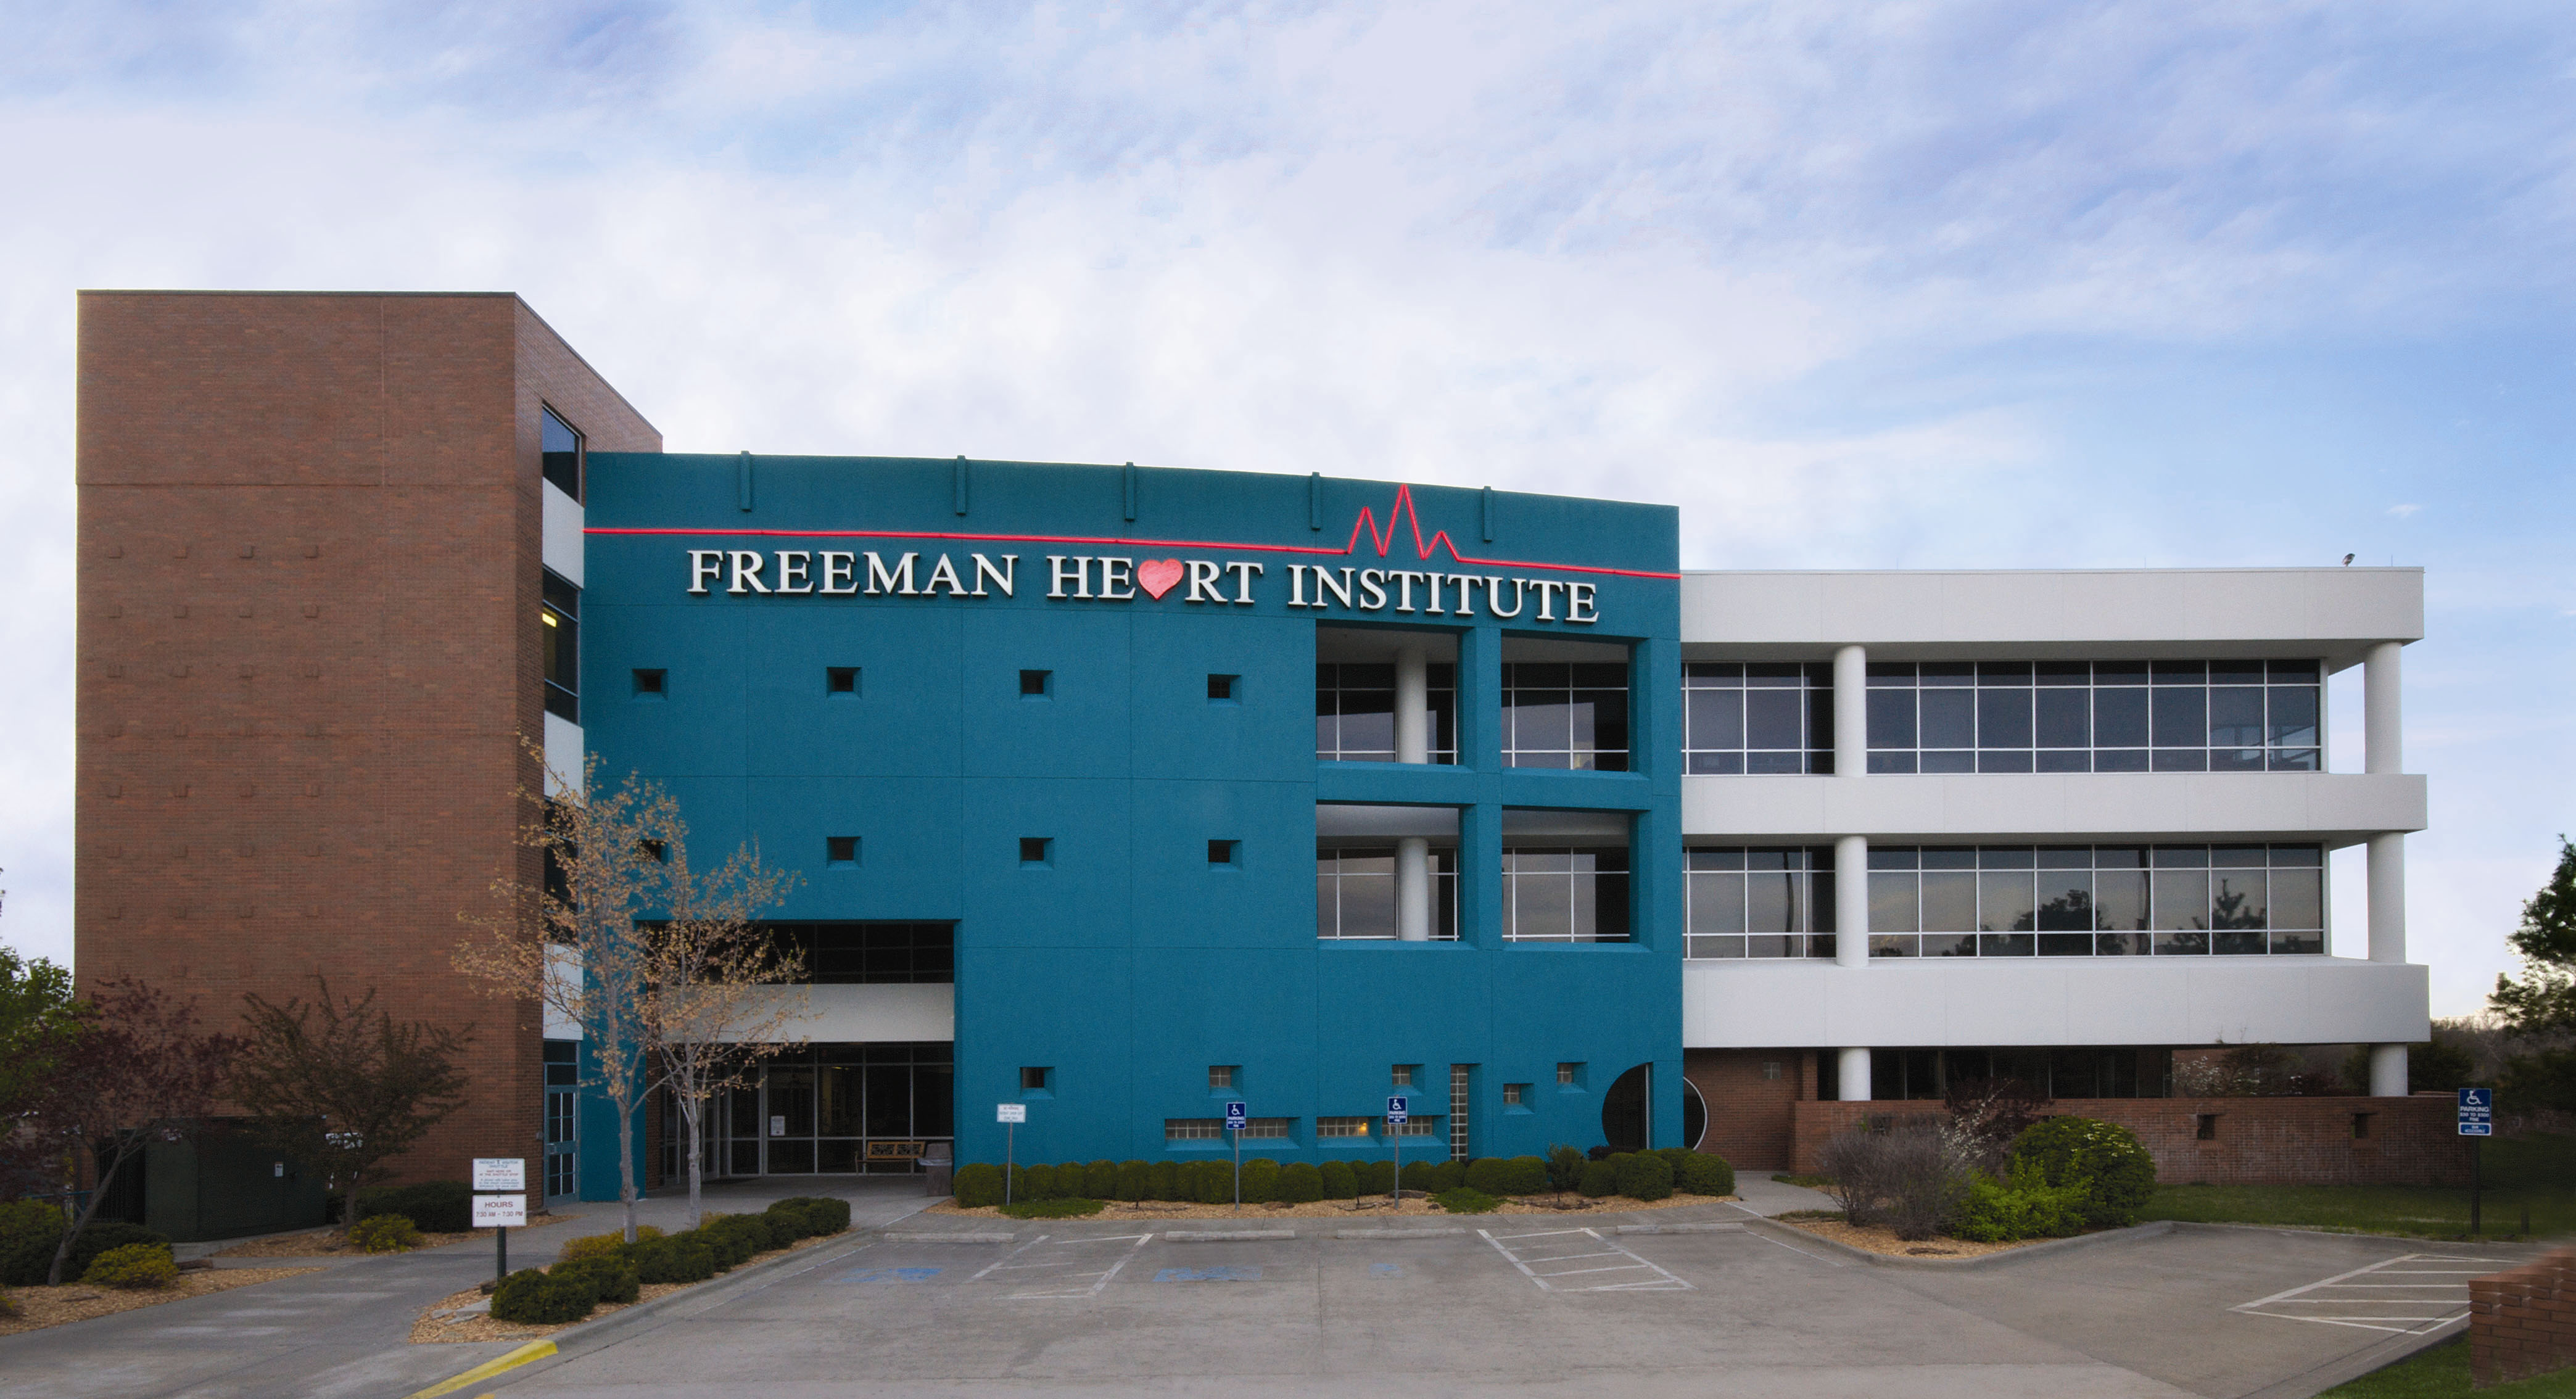 Freeman Heart Institute 2009